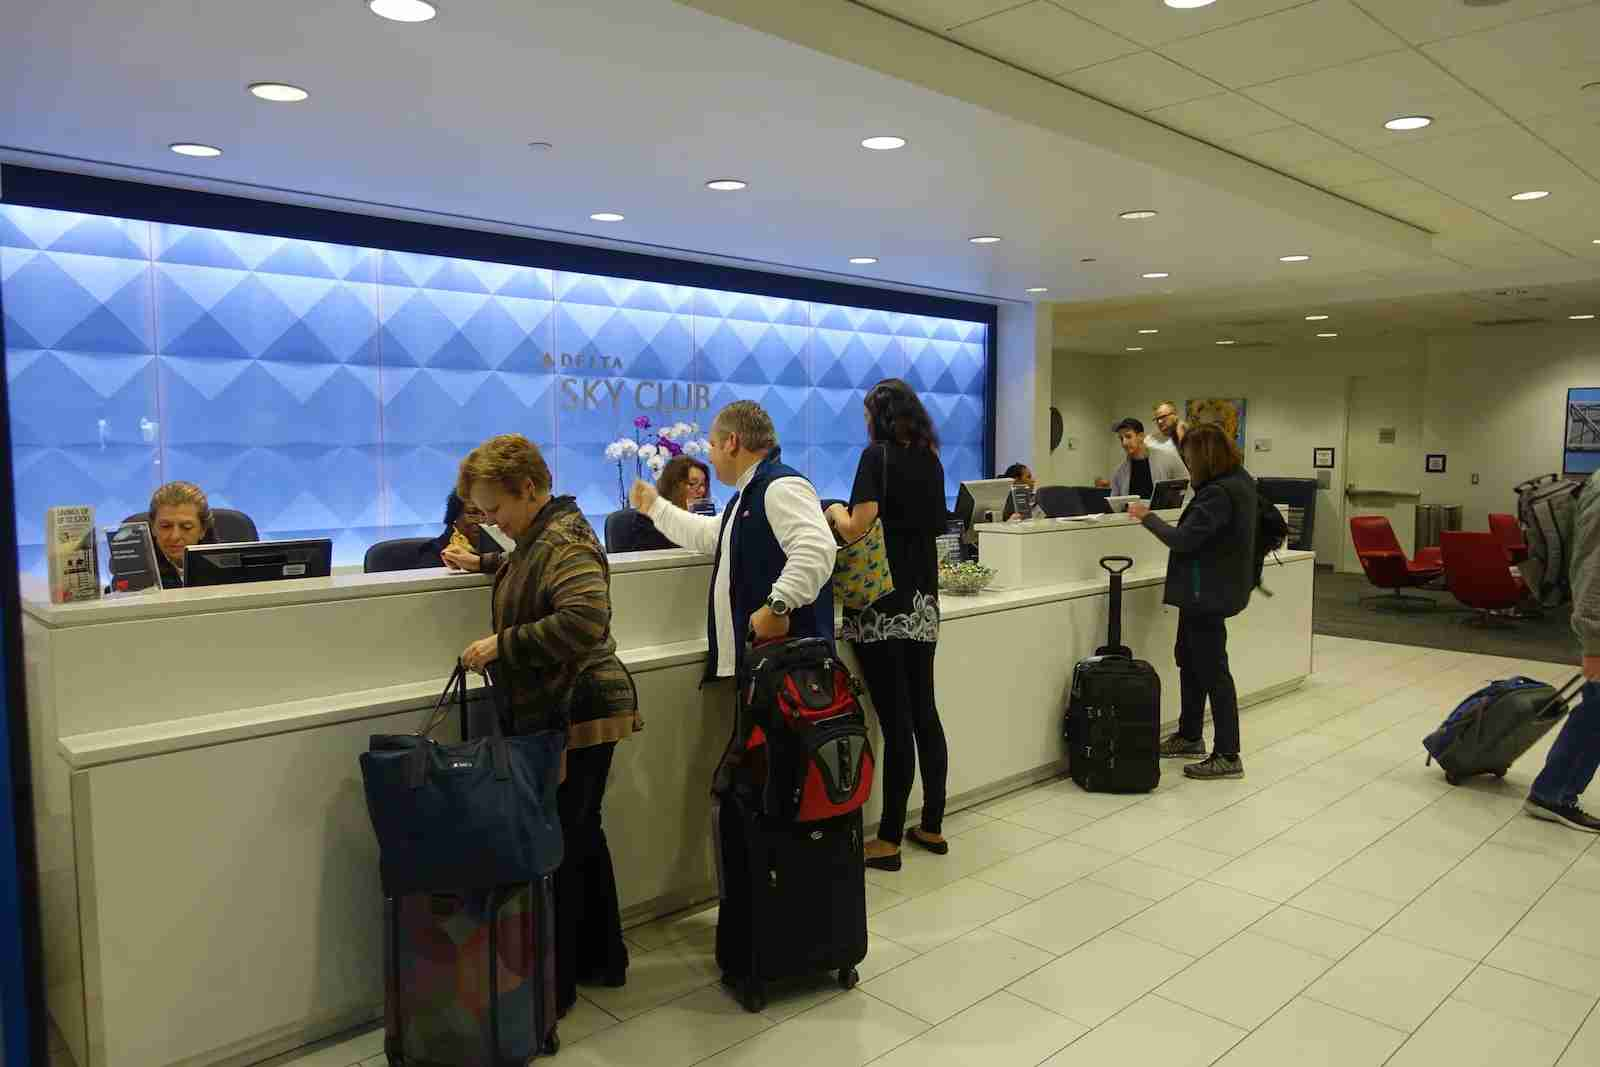 Check-in at the Sky Club.